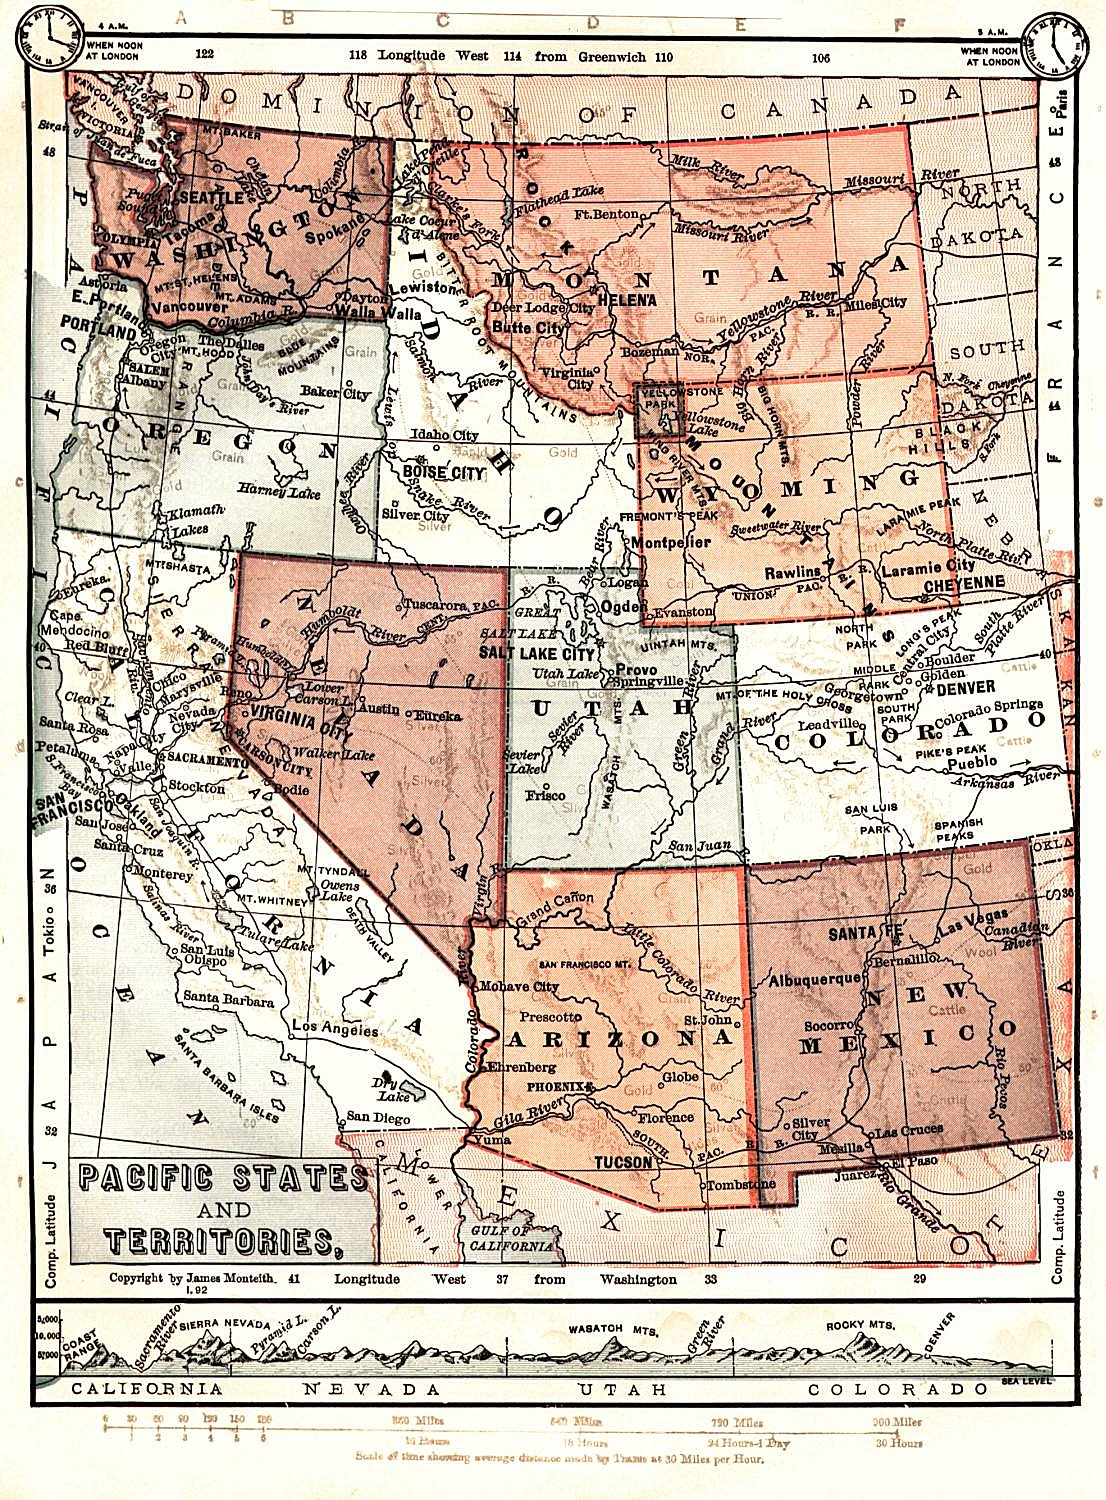 Wyoming Maps. Wyoming Digital Map Library. Table of Contents ...